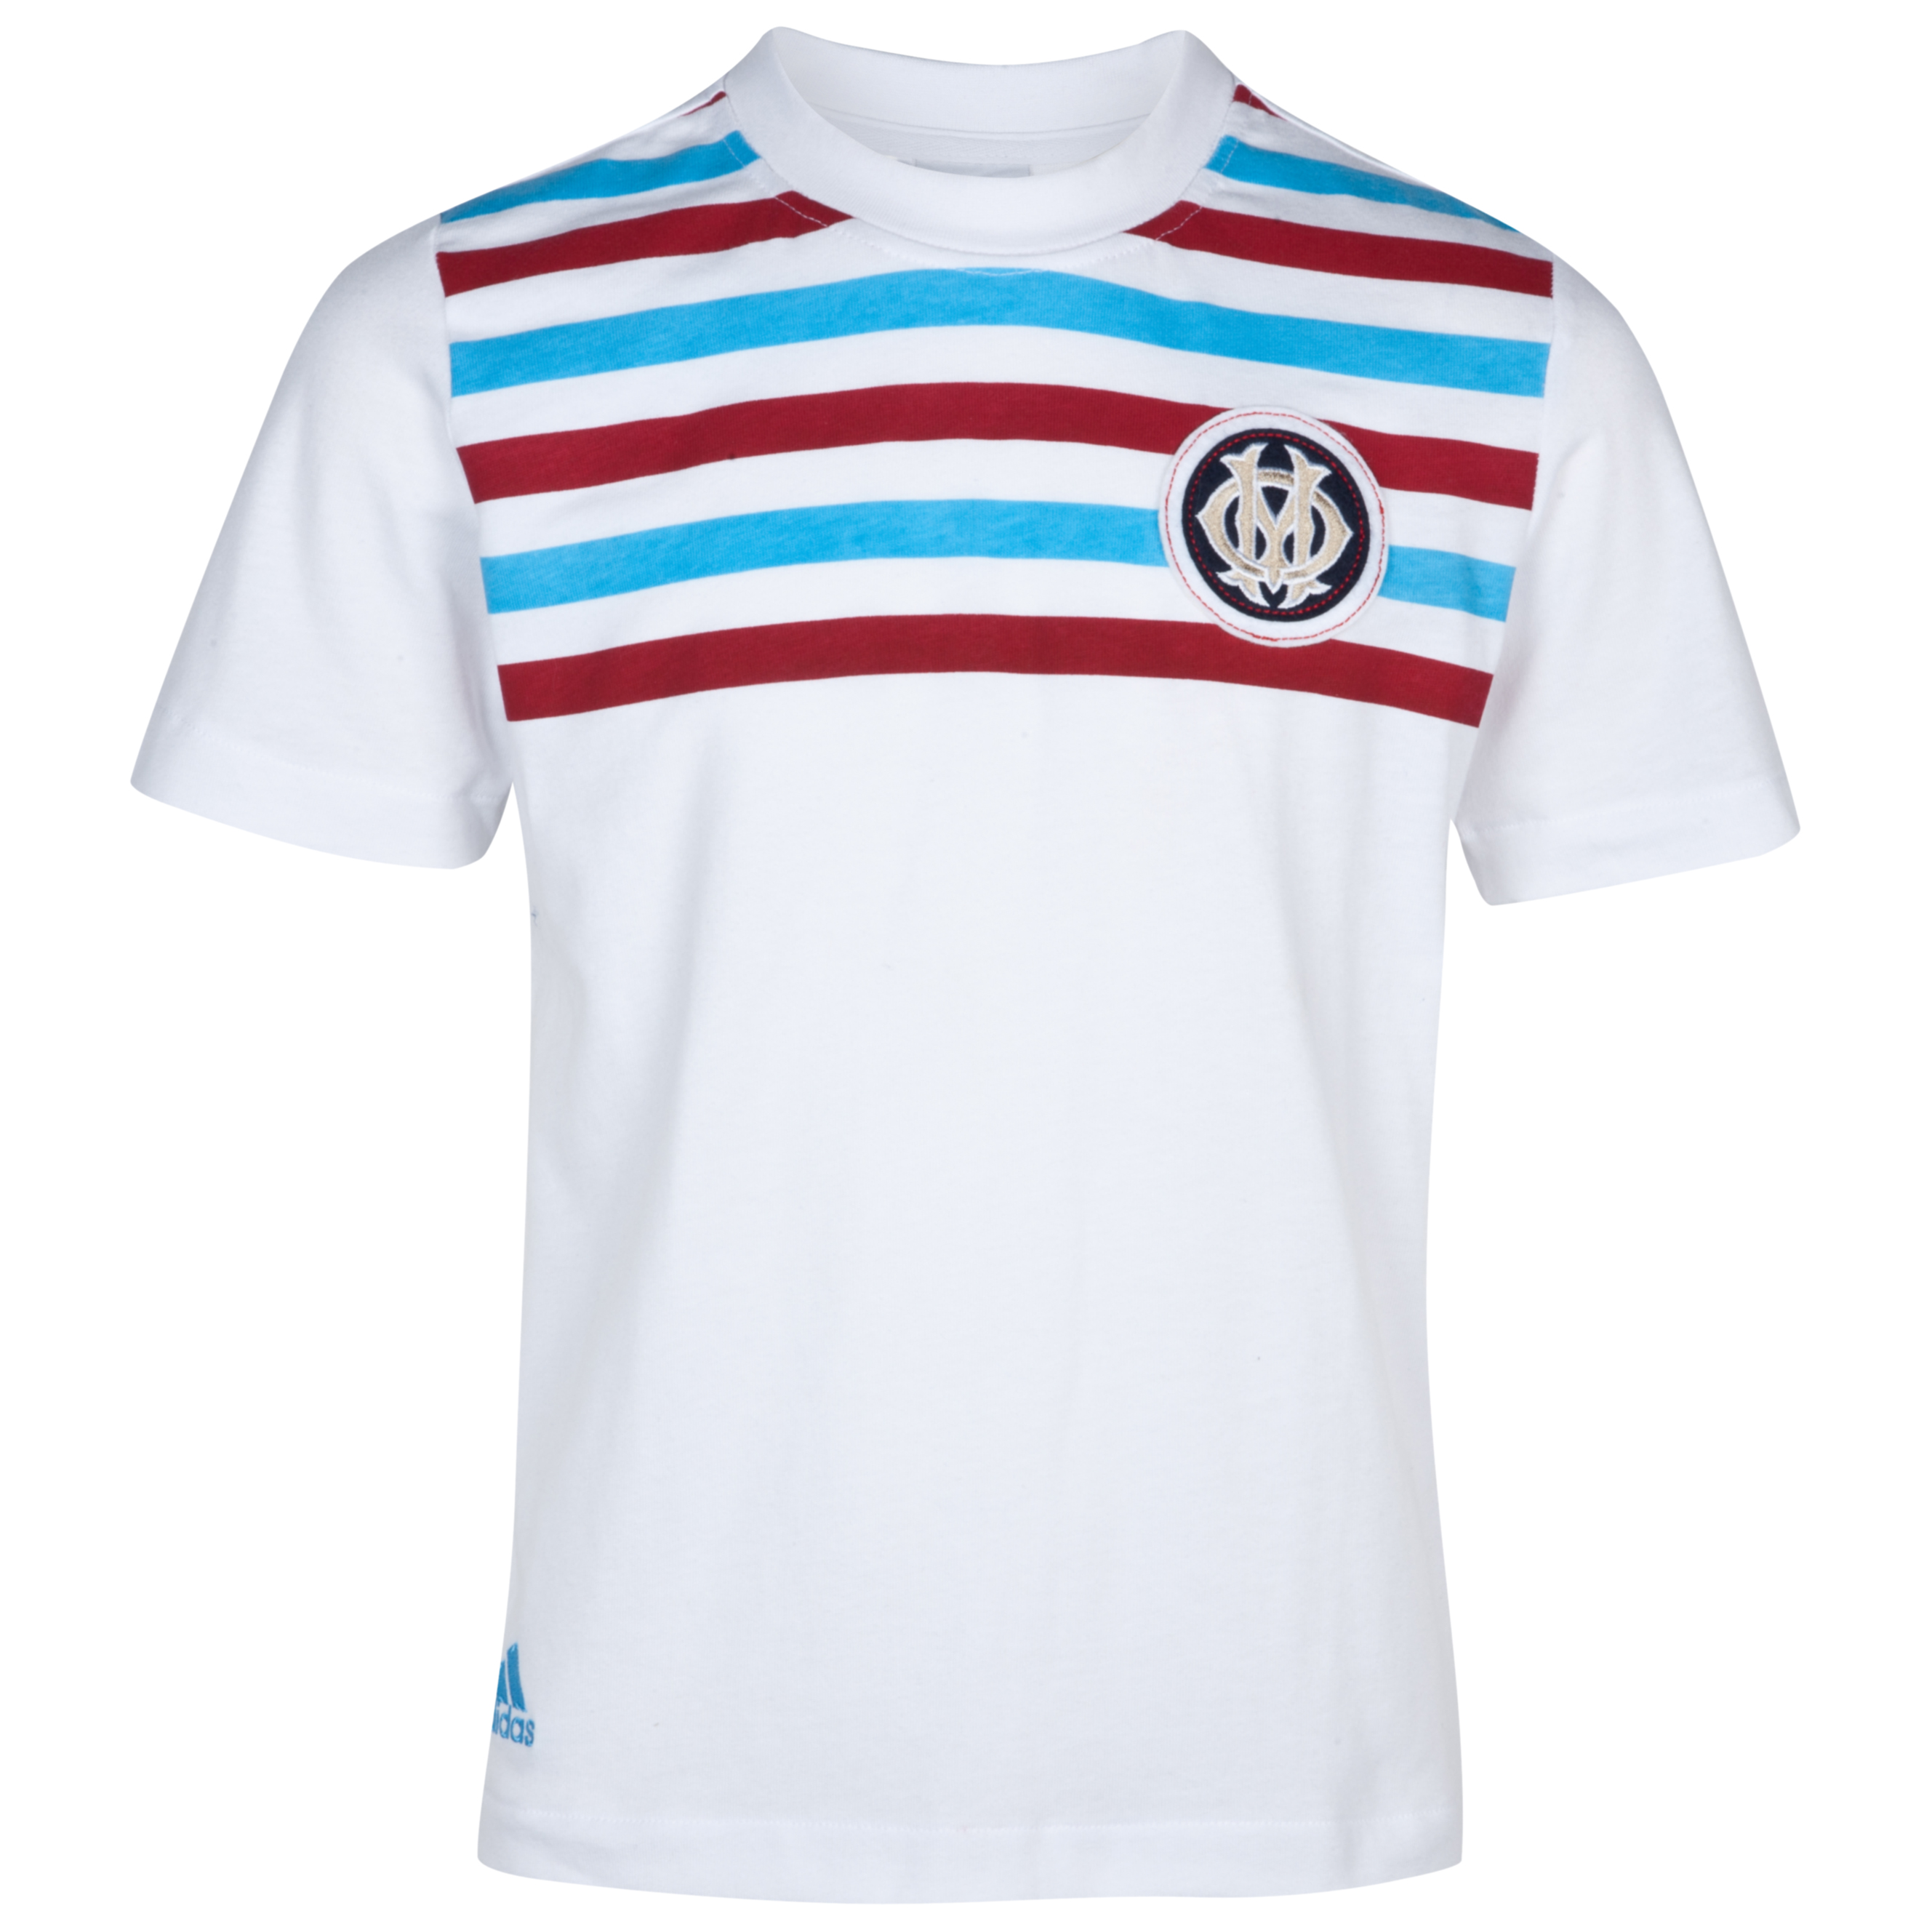 T-shirt Authentic Olympique de Marseille - Blanc - Junior